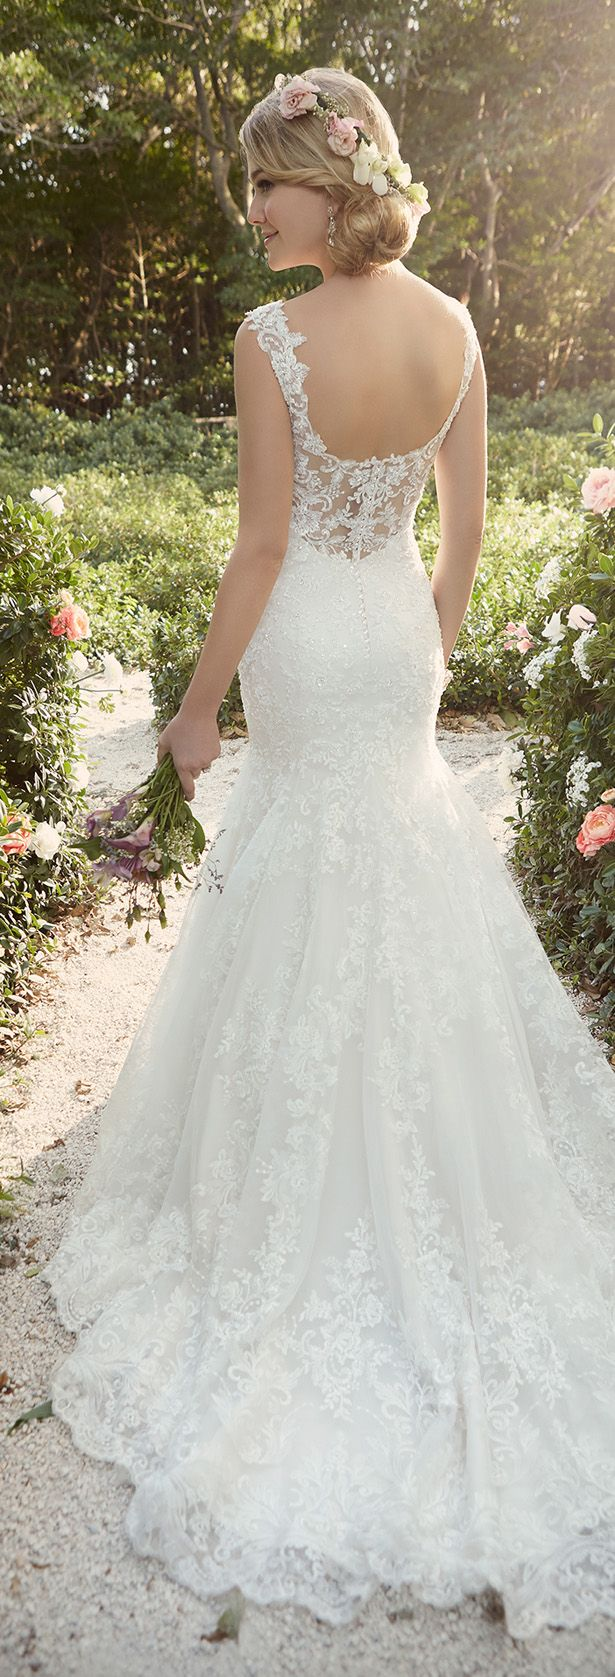 BEST #WeddingDresses of 2015 - Essense of Australia Spring 2016 Bridal Collection